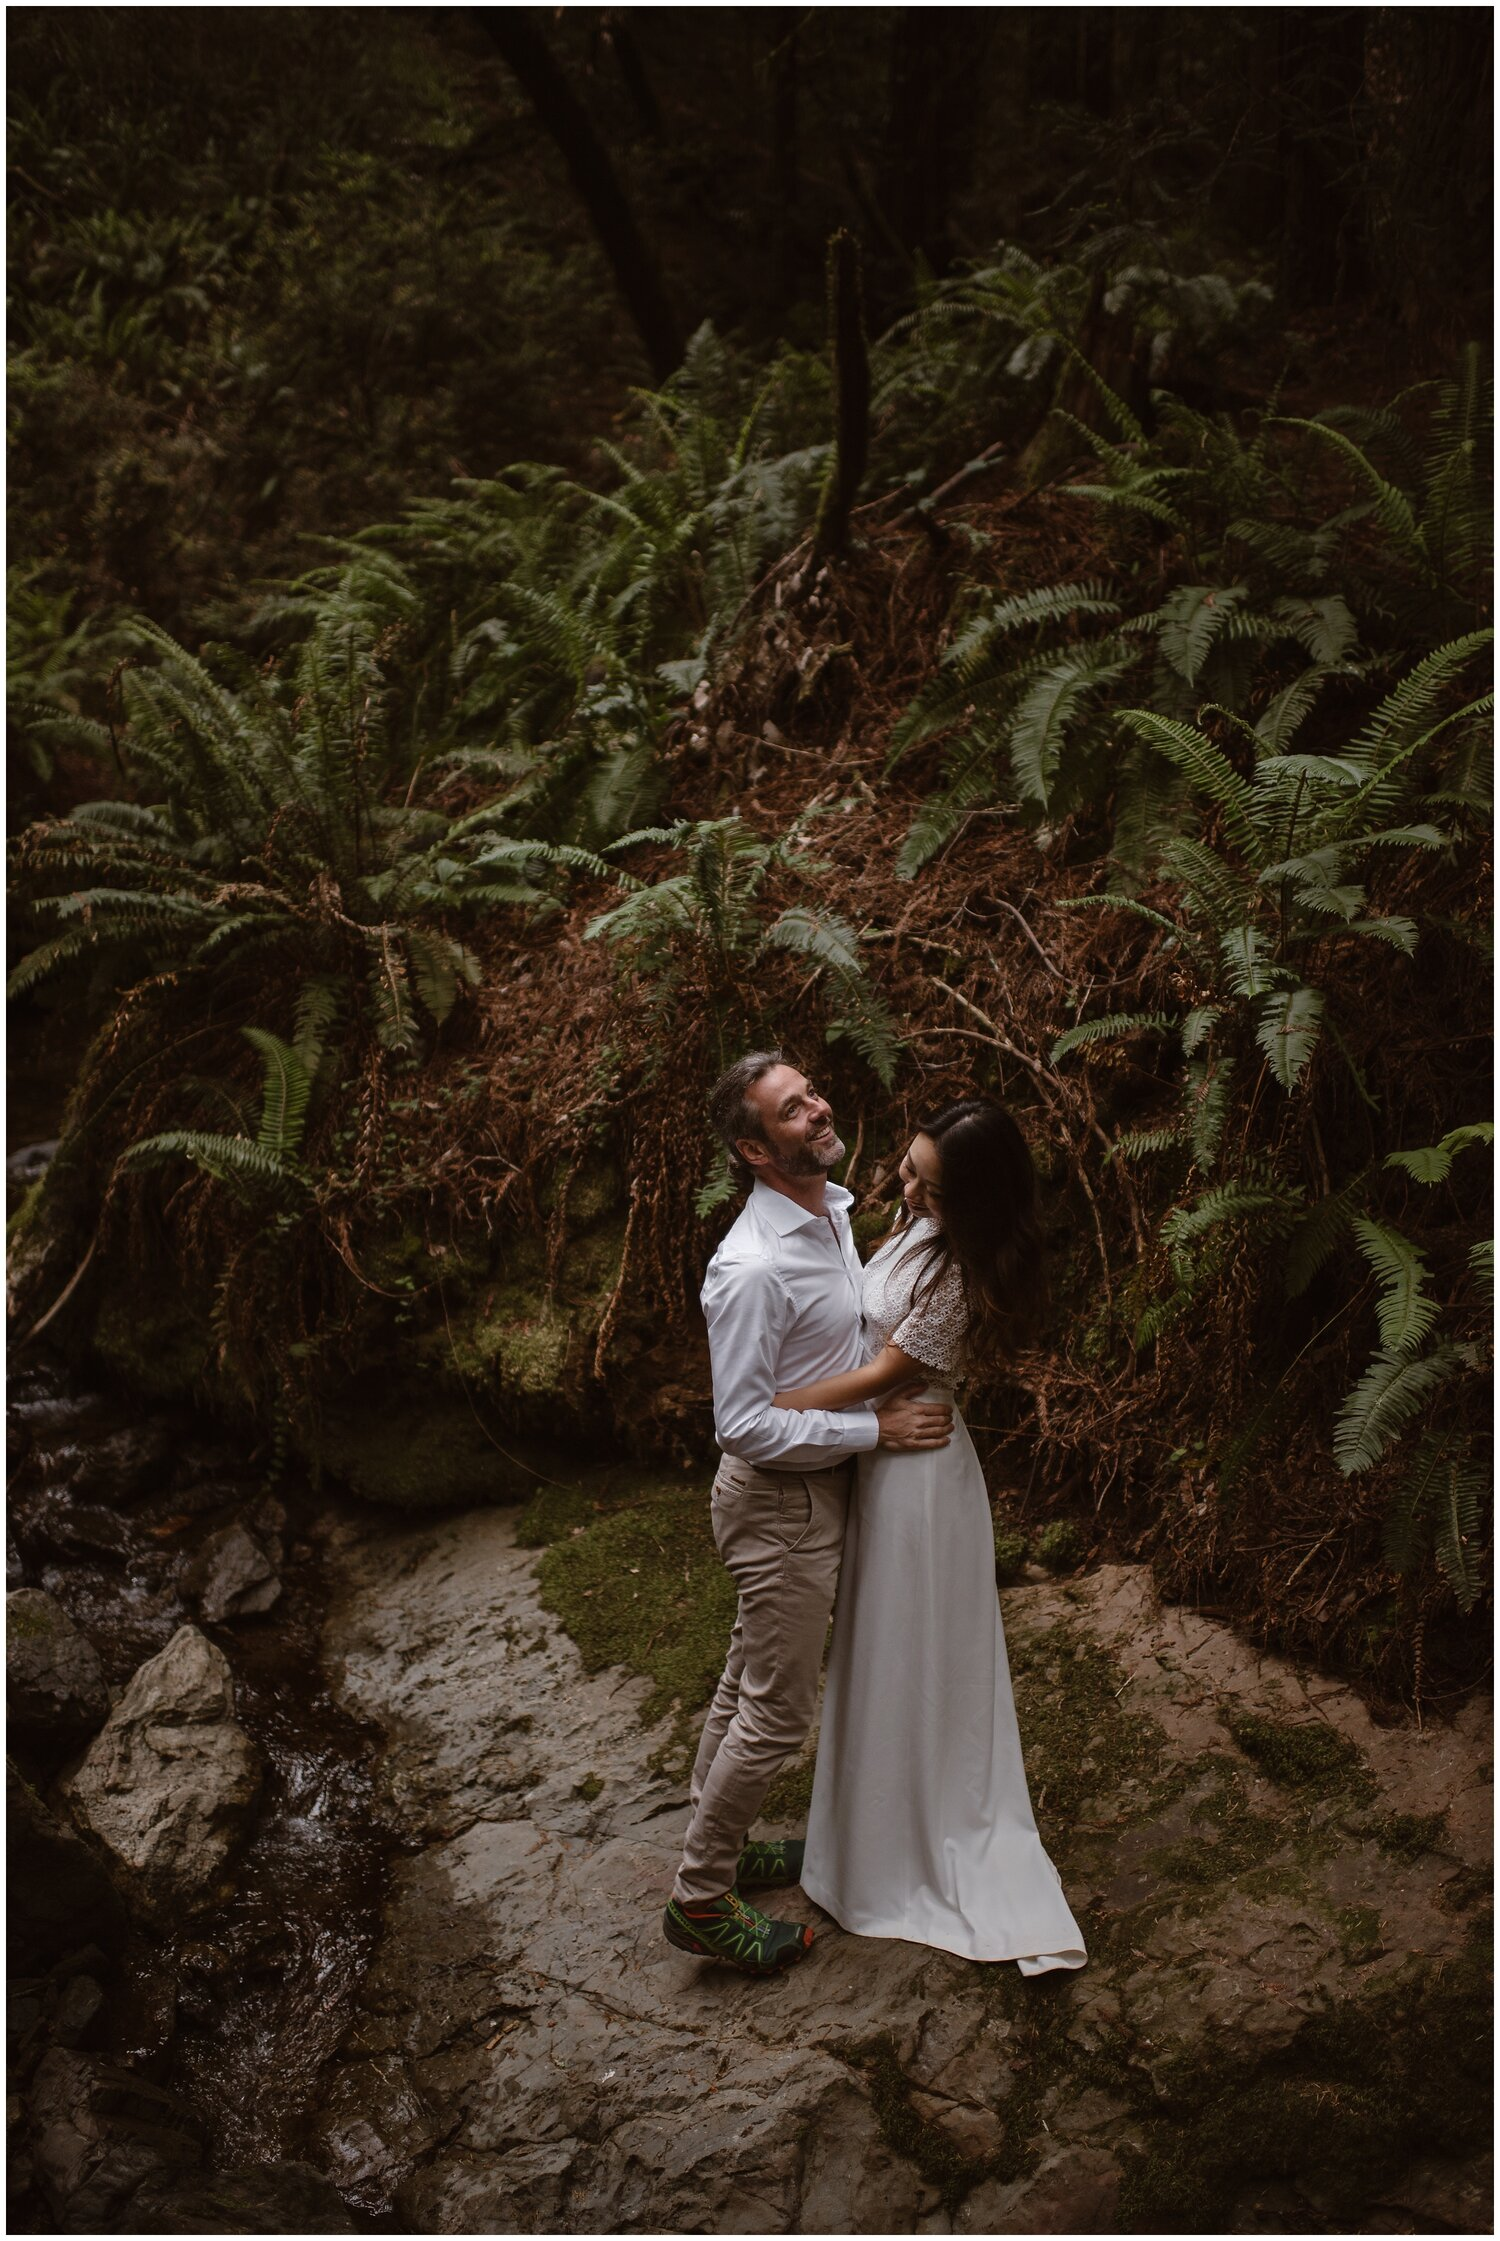 Bride and groom smile at each other in the forest on their wedding day.